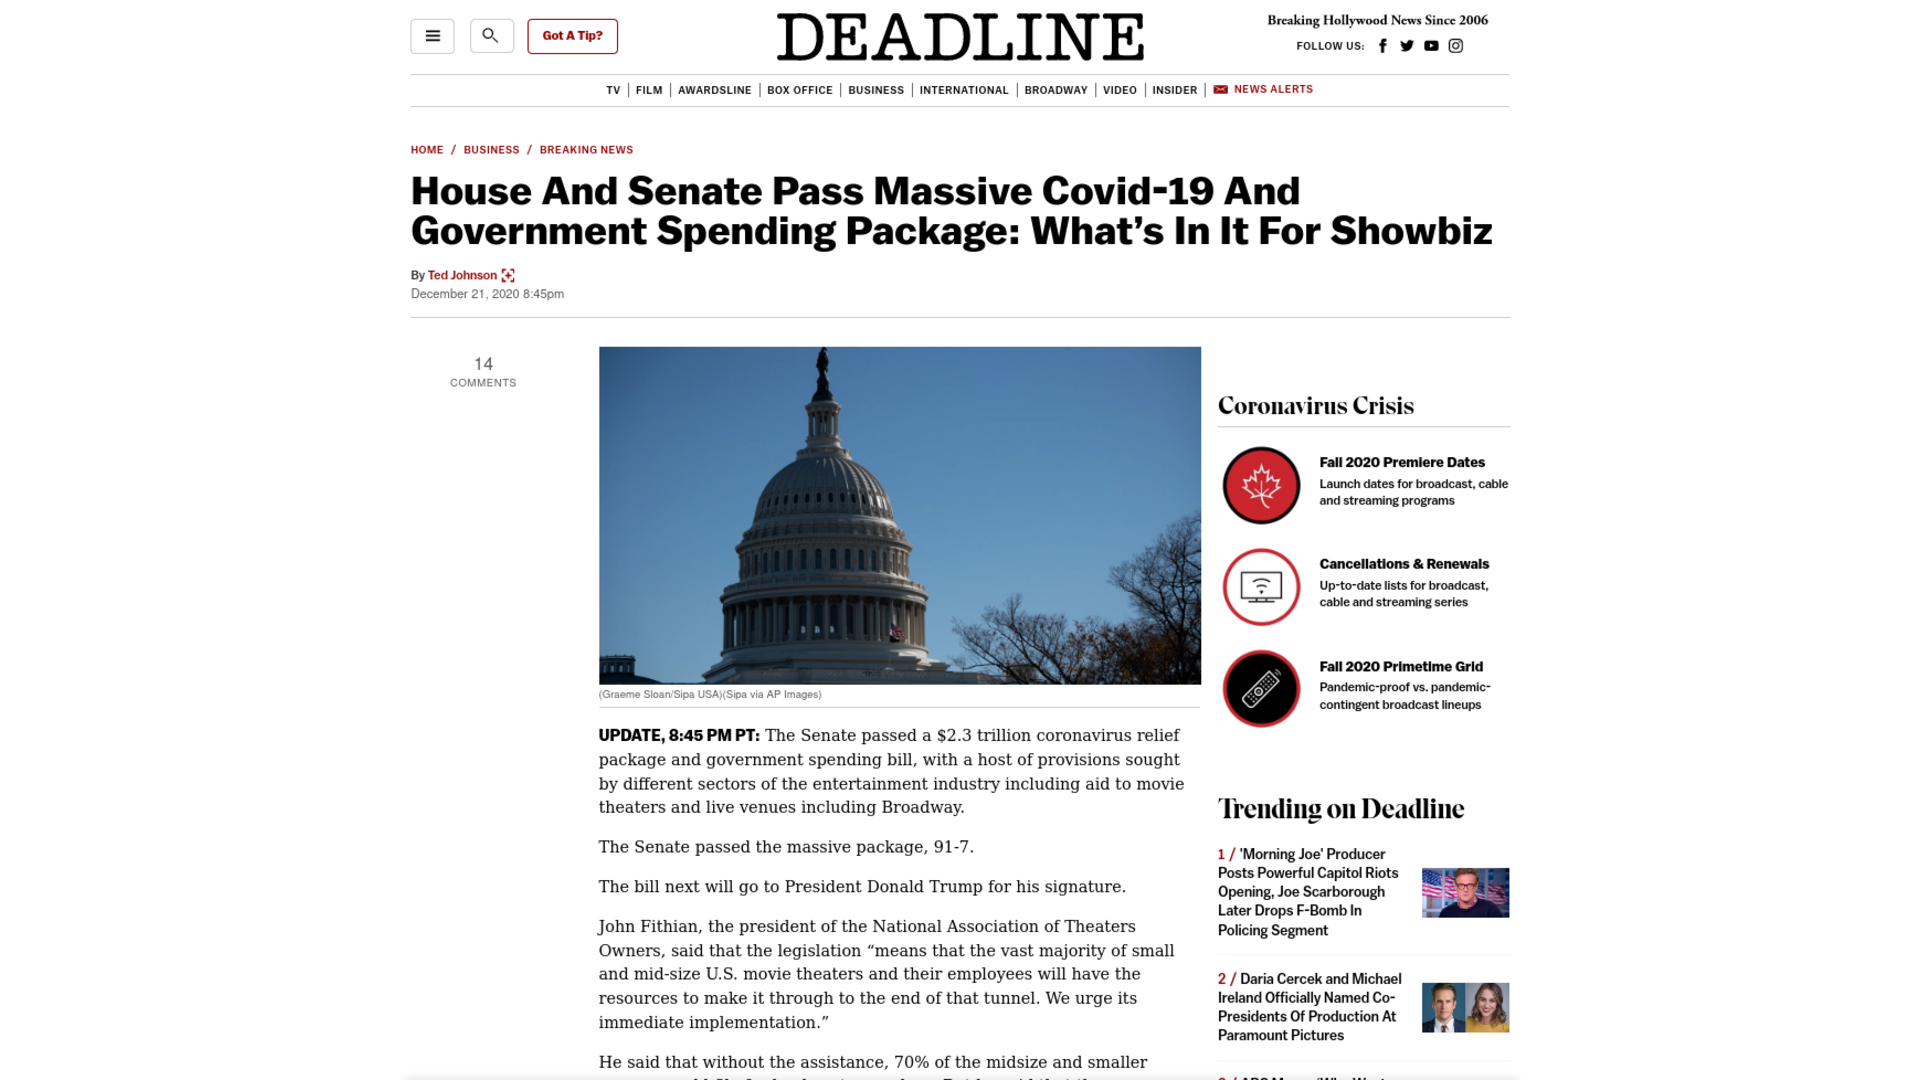 Fairness Rocks News House And Senate Pass Massive Covid-19 And Government Spending Package: What's In It For Showbiz